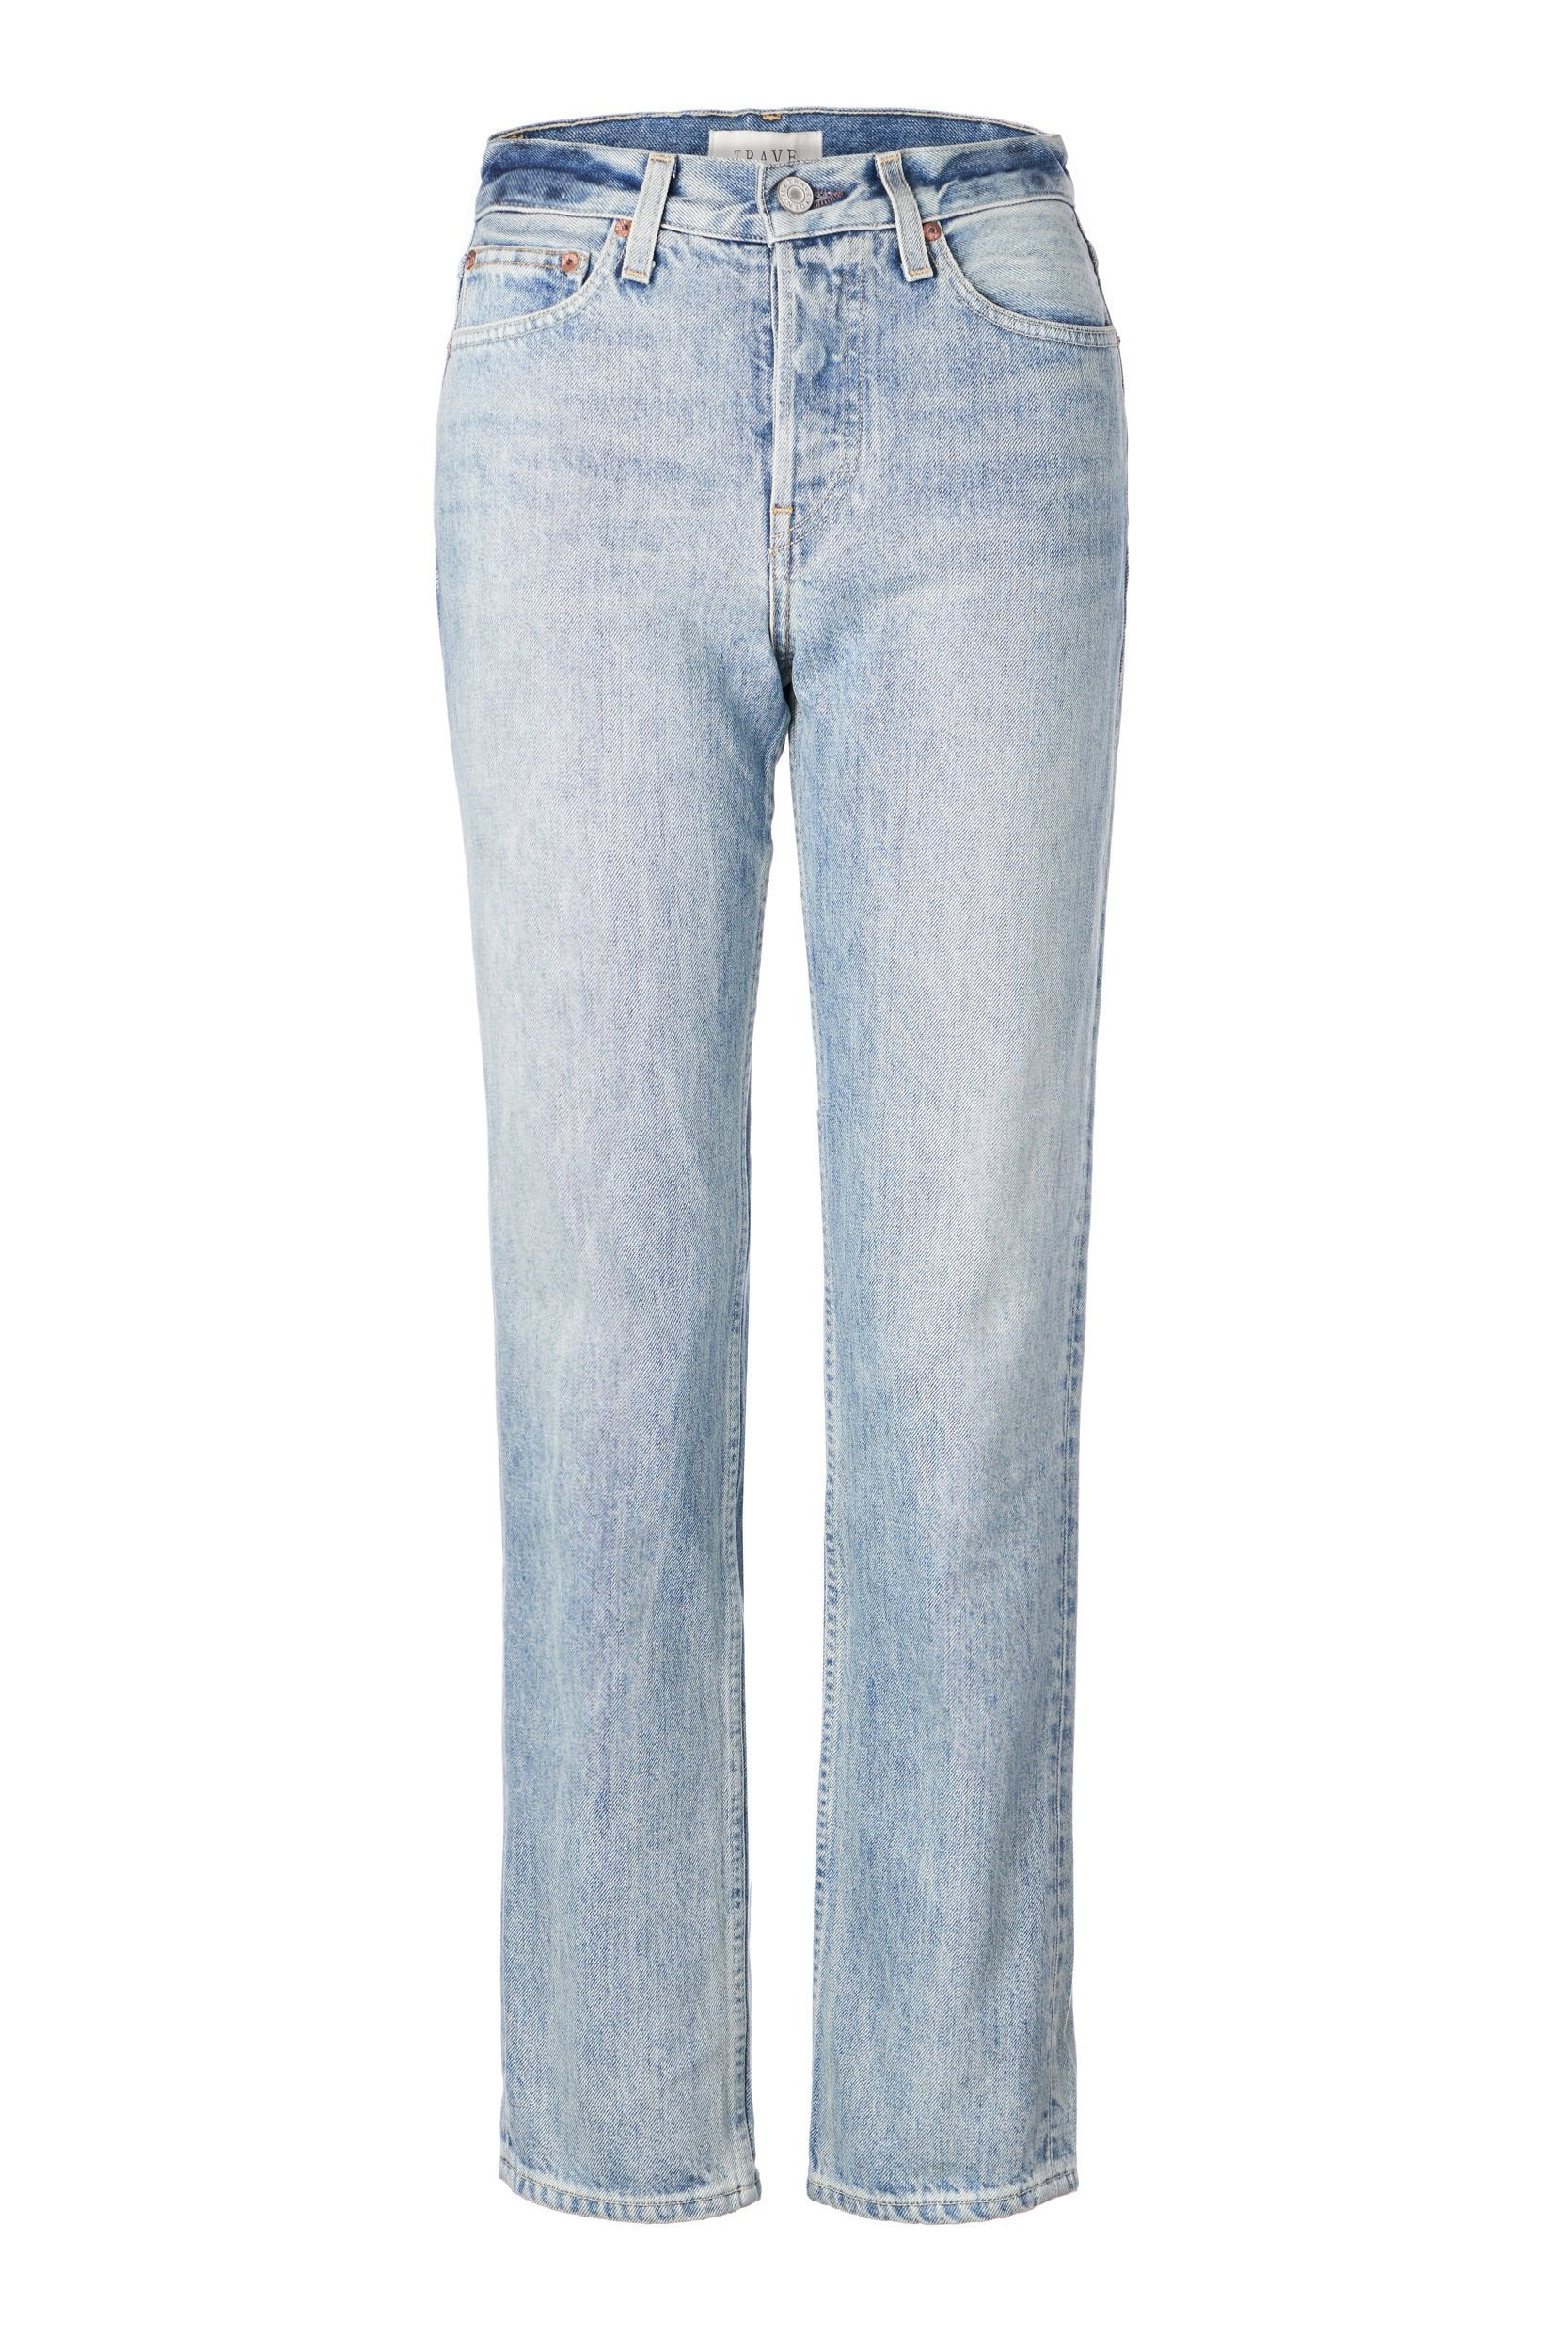 Constance - Slow Ride Denim - Trave